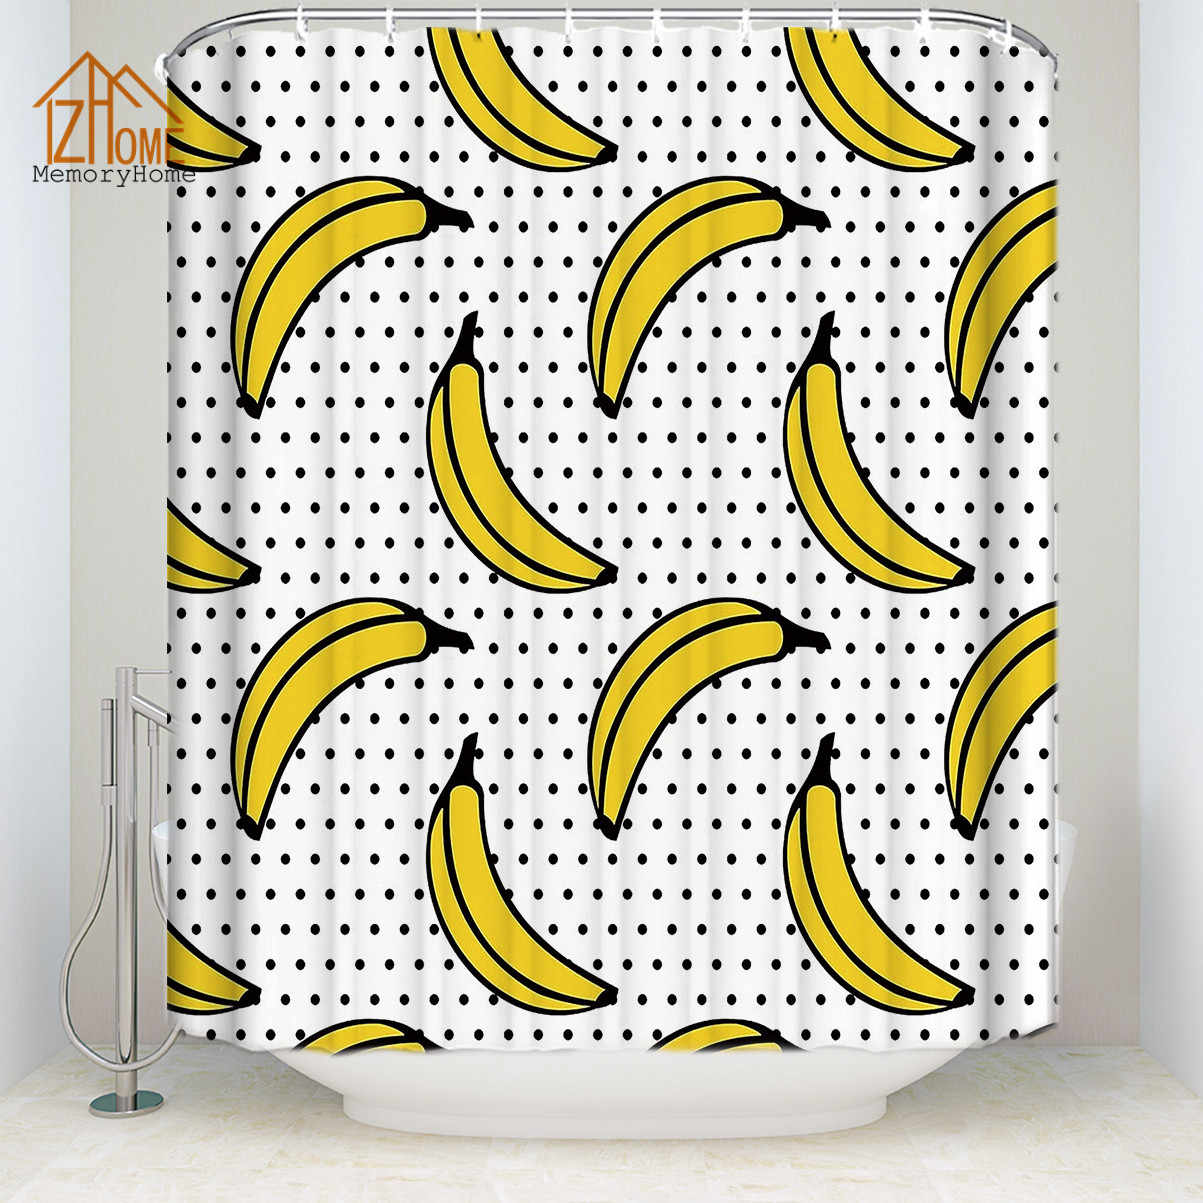 Memory Home Fruit Yellow Banana Shower Curtains for Bathroom Polyester Fabric Waterproof Polka Dot Bath Curtain Shower Curtain